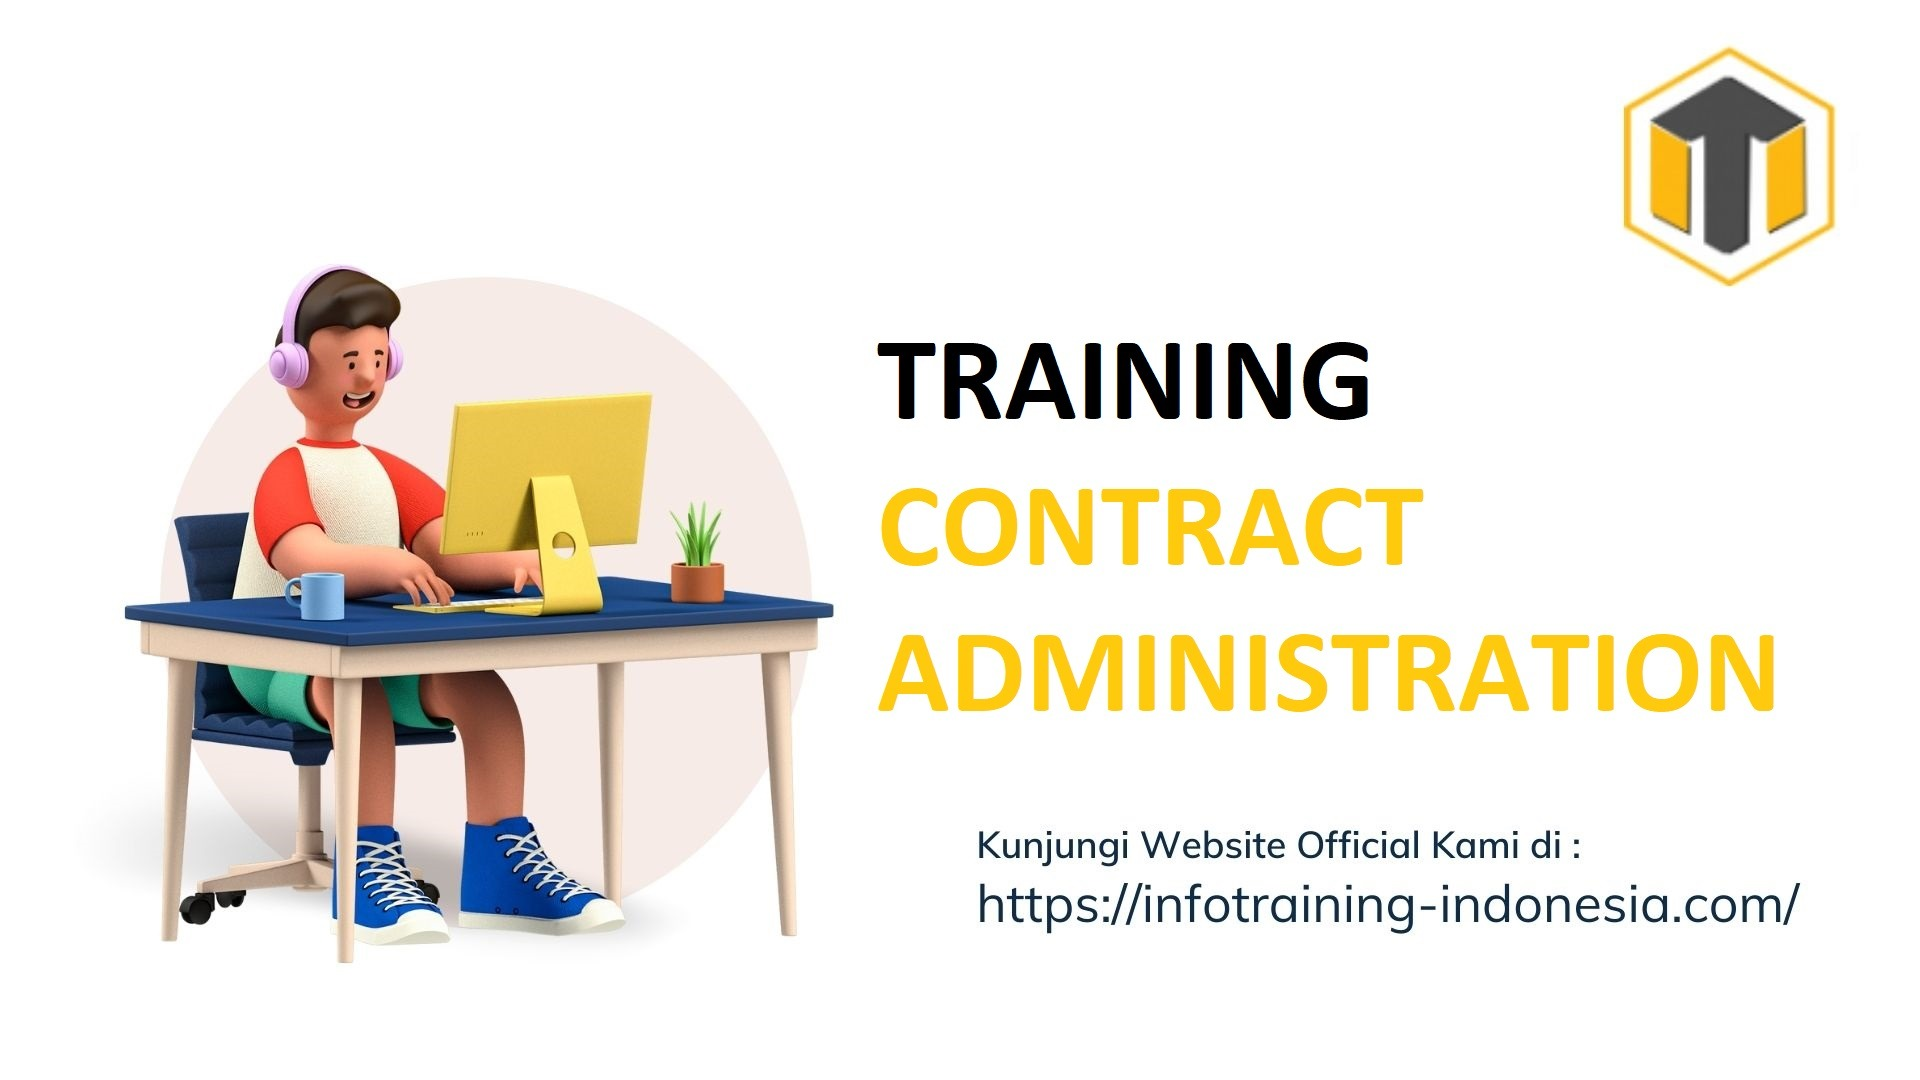 TRAINING CONTRACT ADMINISTRATION Administrasi